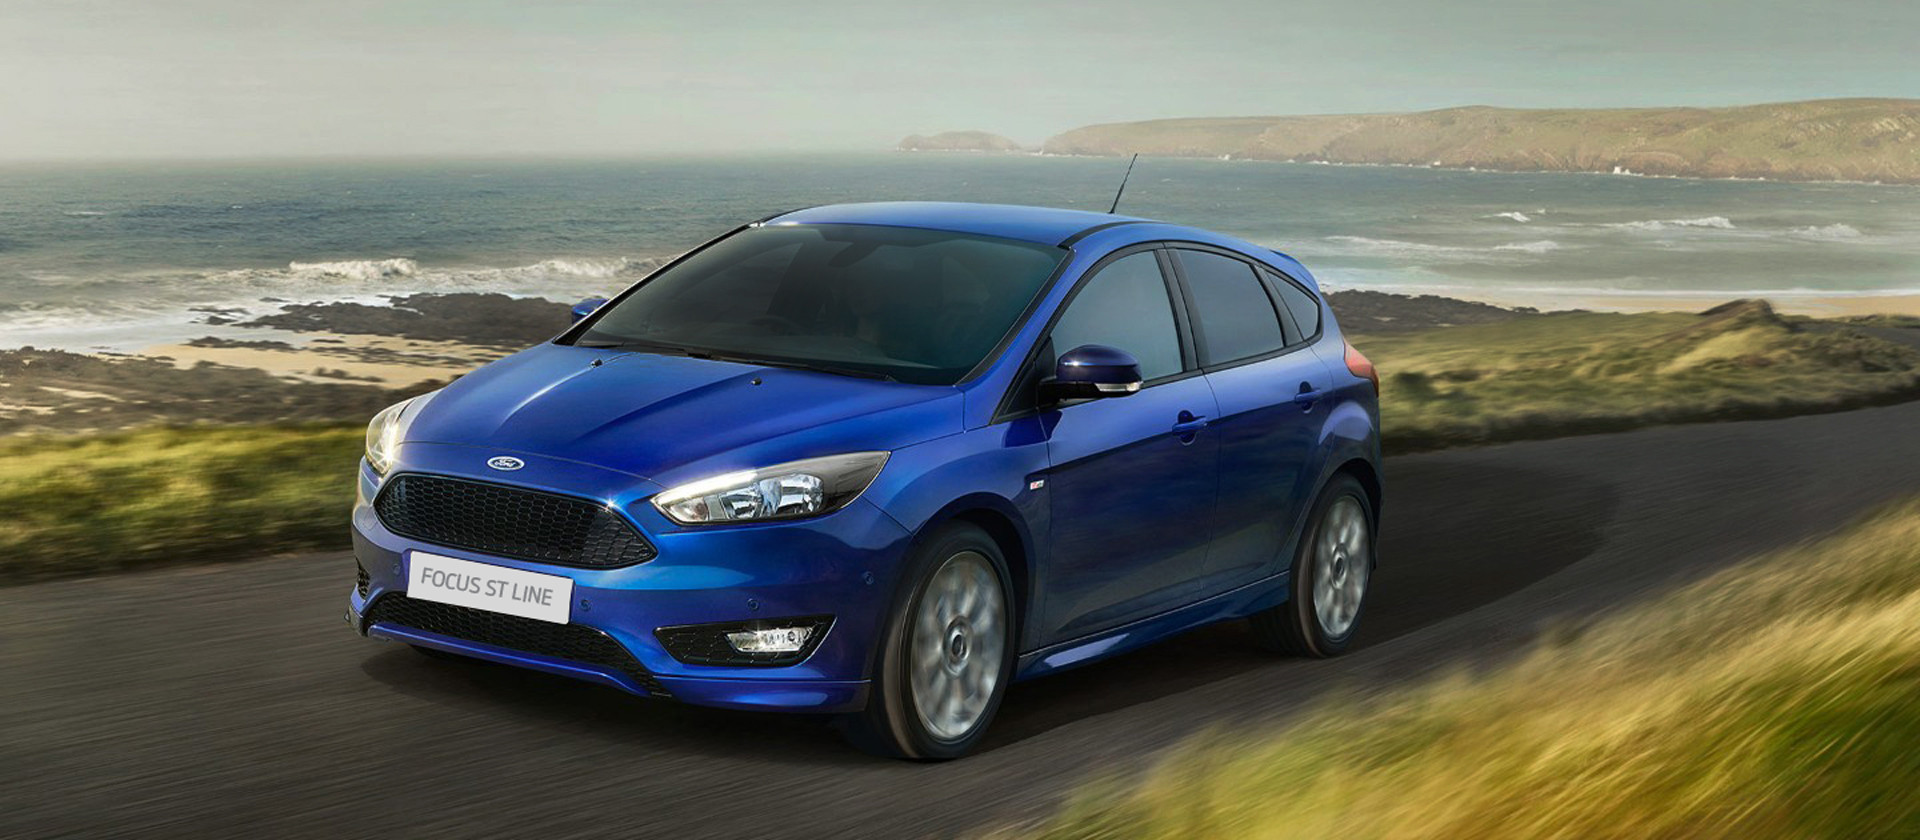 ford-focus_st_line-eu-focus_location_wales_v2-16x9-2160x1215jpgrenditions